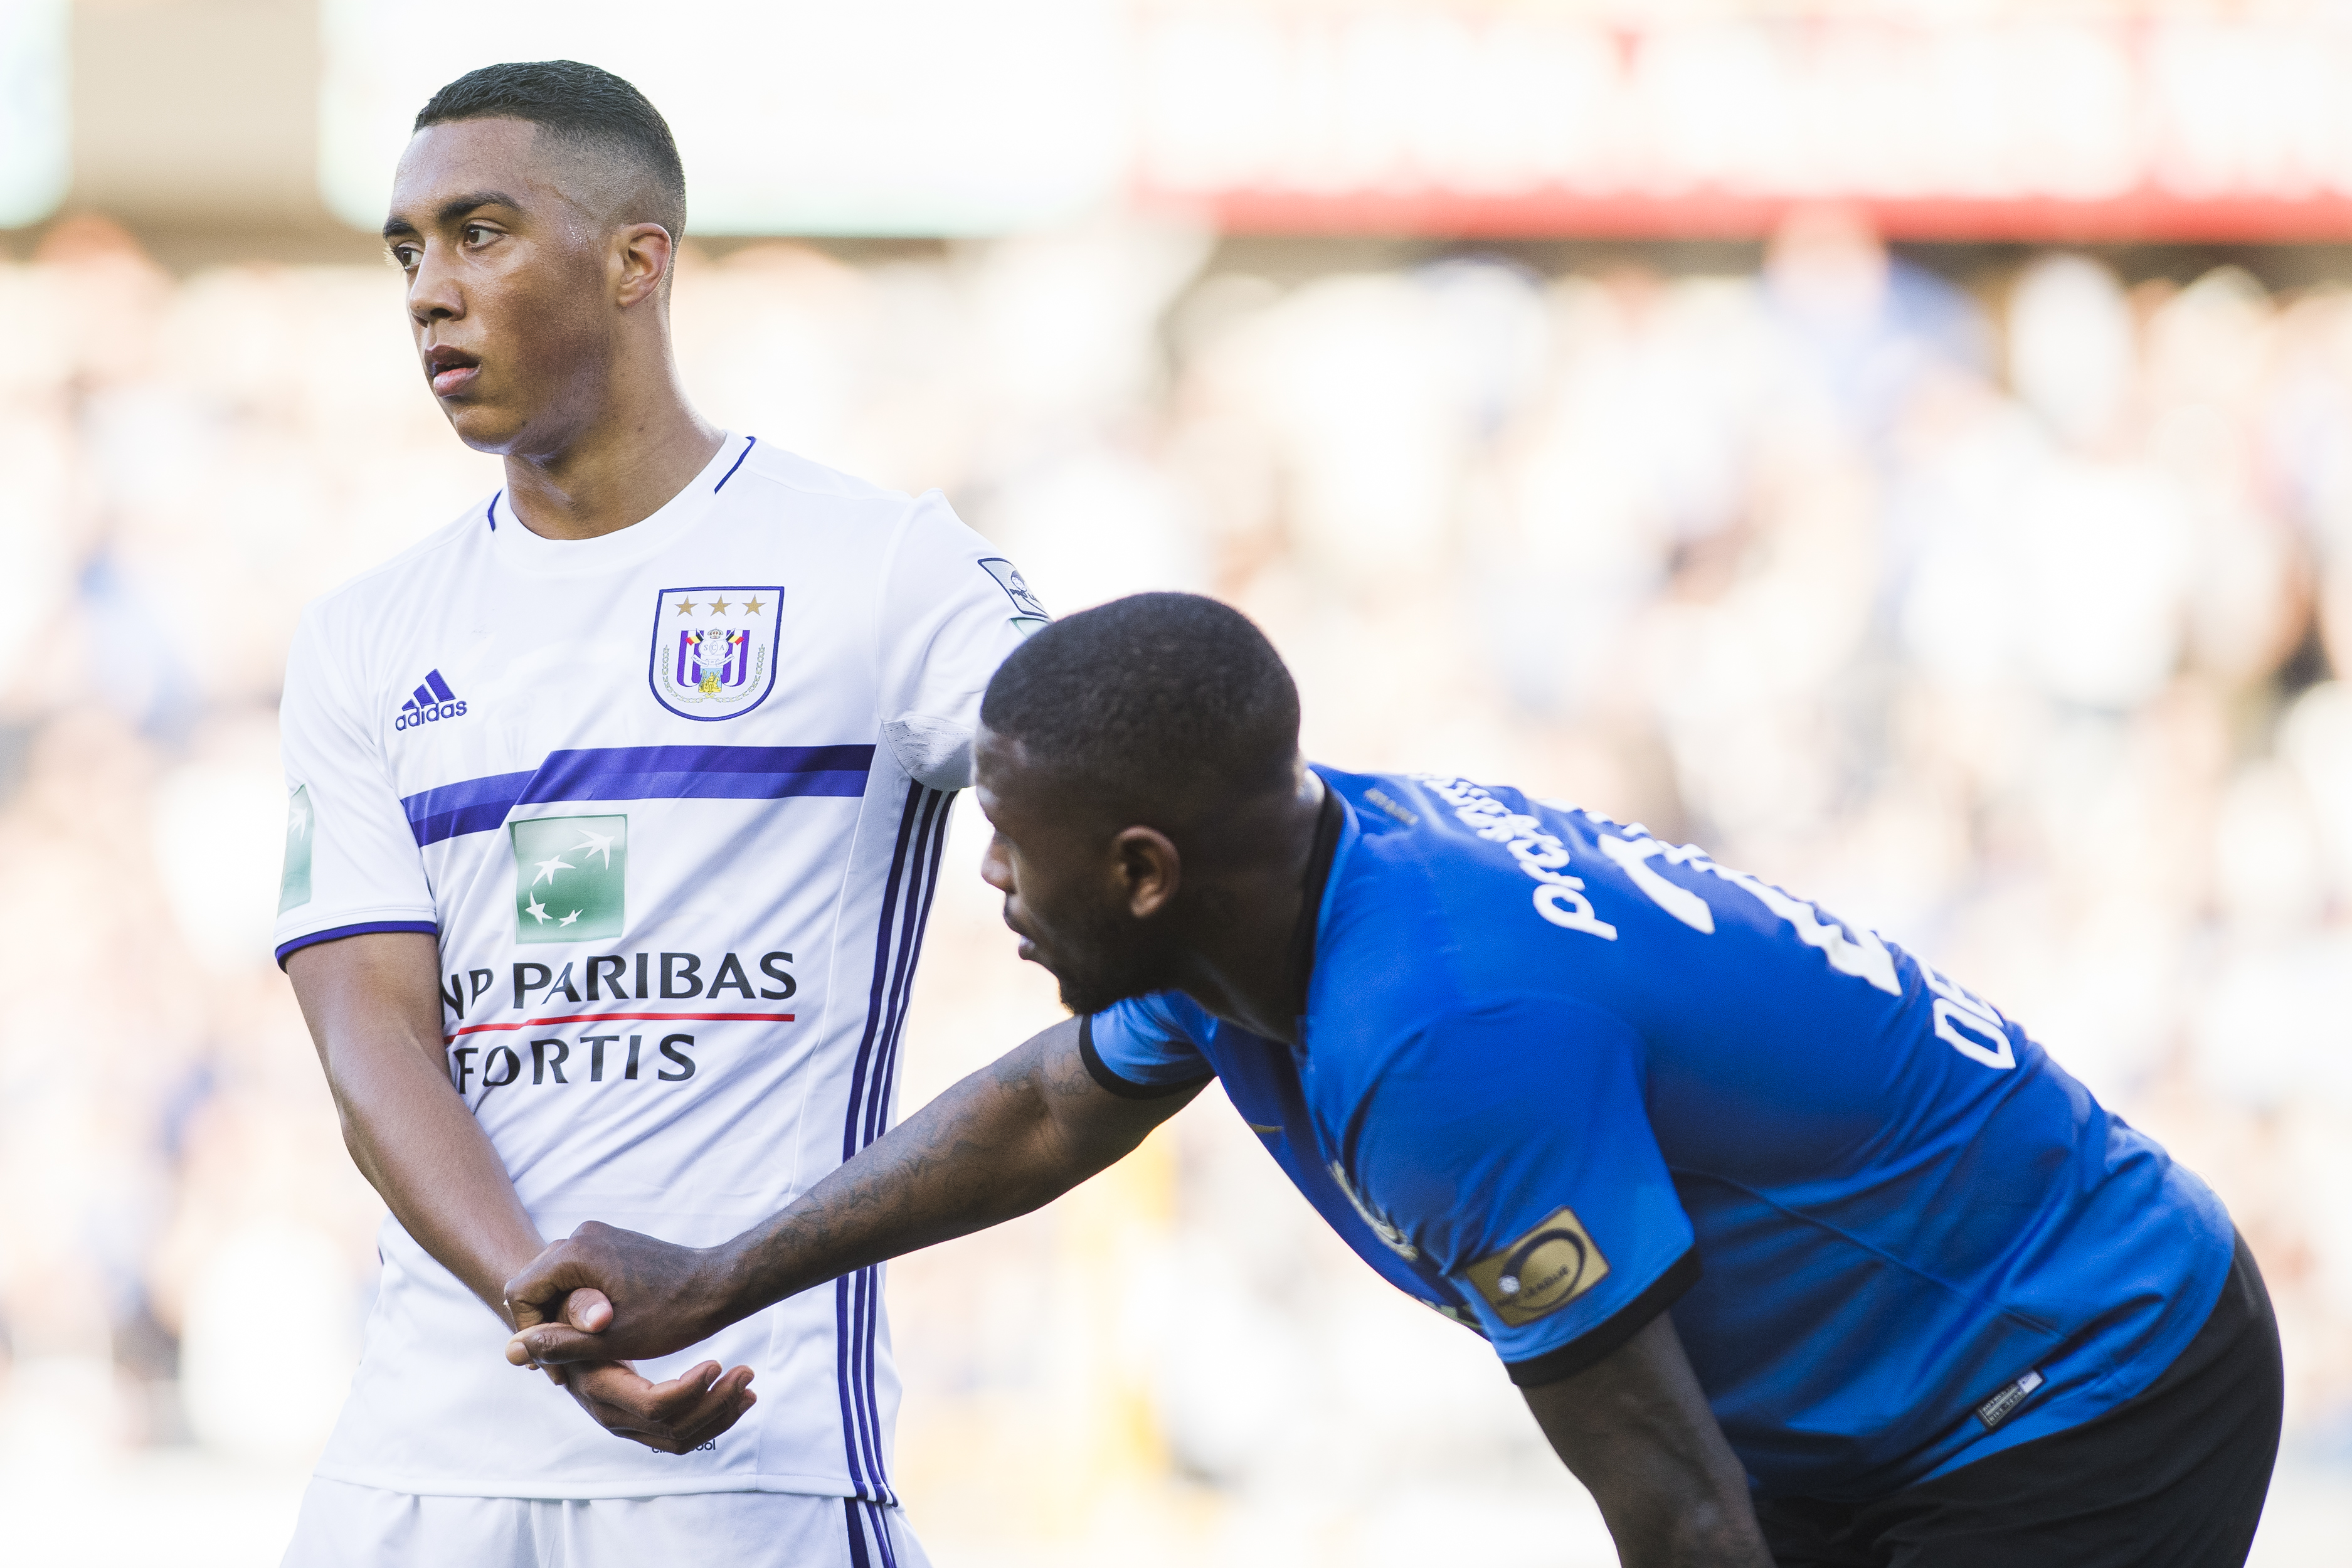 Anderlecht's Youri Tielemans looks dejected after the Jupiler Pro League match between Club Brugge and RSC Anderlecht, in Brugge, Sunday 14 May 2017, on day 8 (out of 10) of the Play-off 1 of the Belgian soccer championship. BELGA PHOTO LAURIE DIEFFEMBACQ